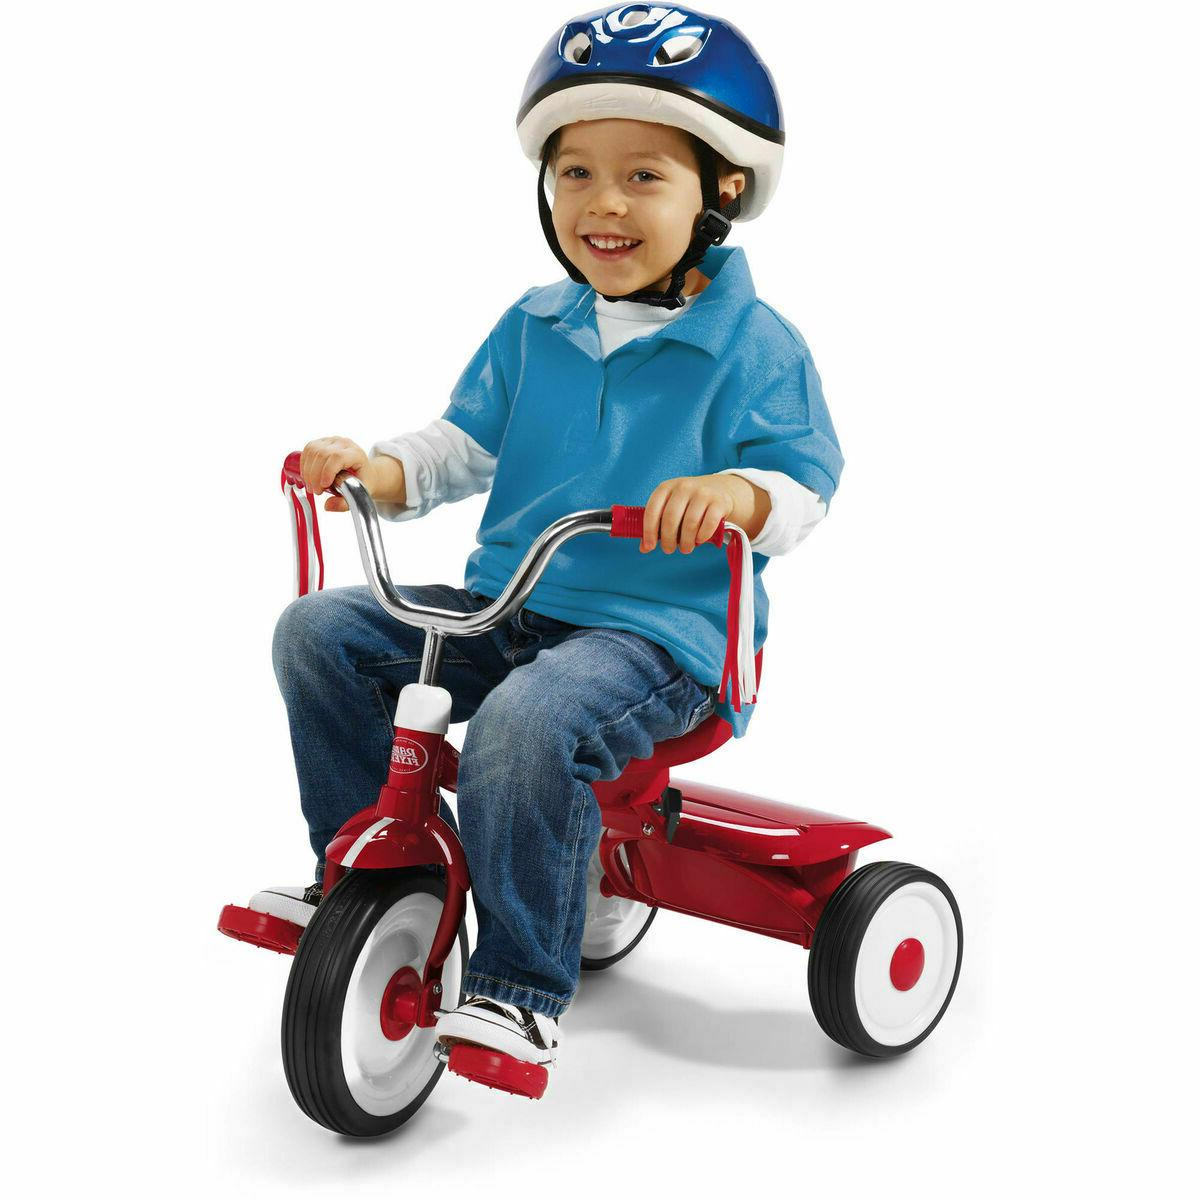 NEW Kids Tricycle Fun Xmas gift Ready to Ride Folding Toy Bi